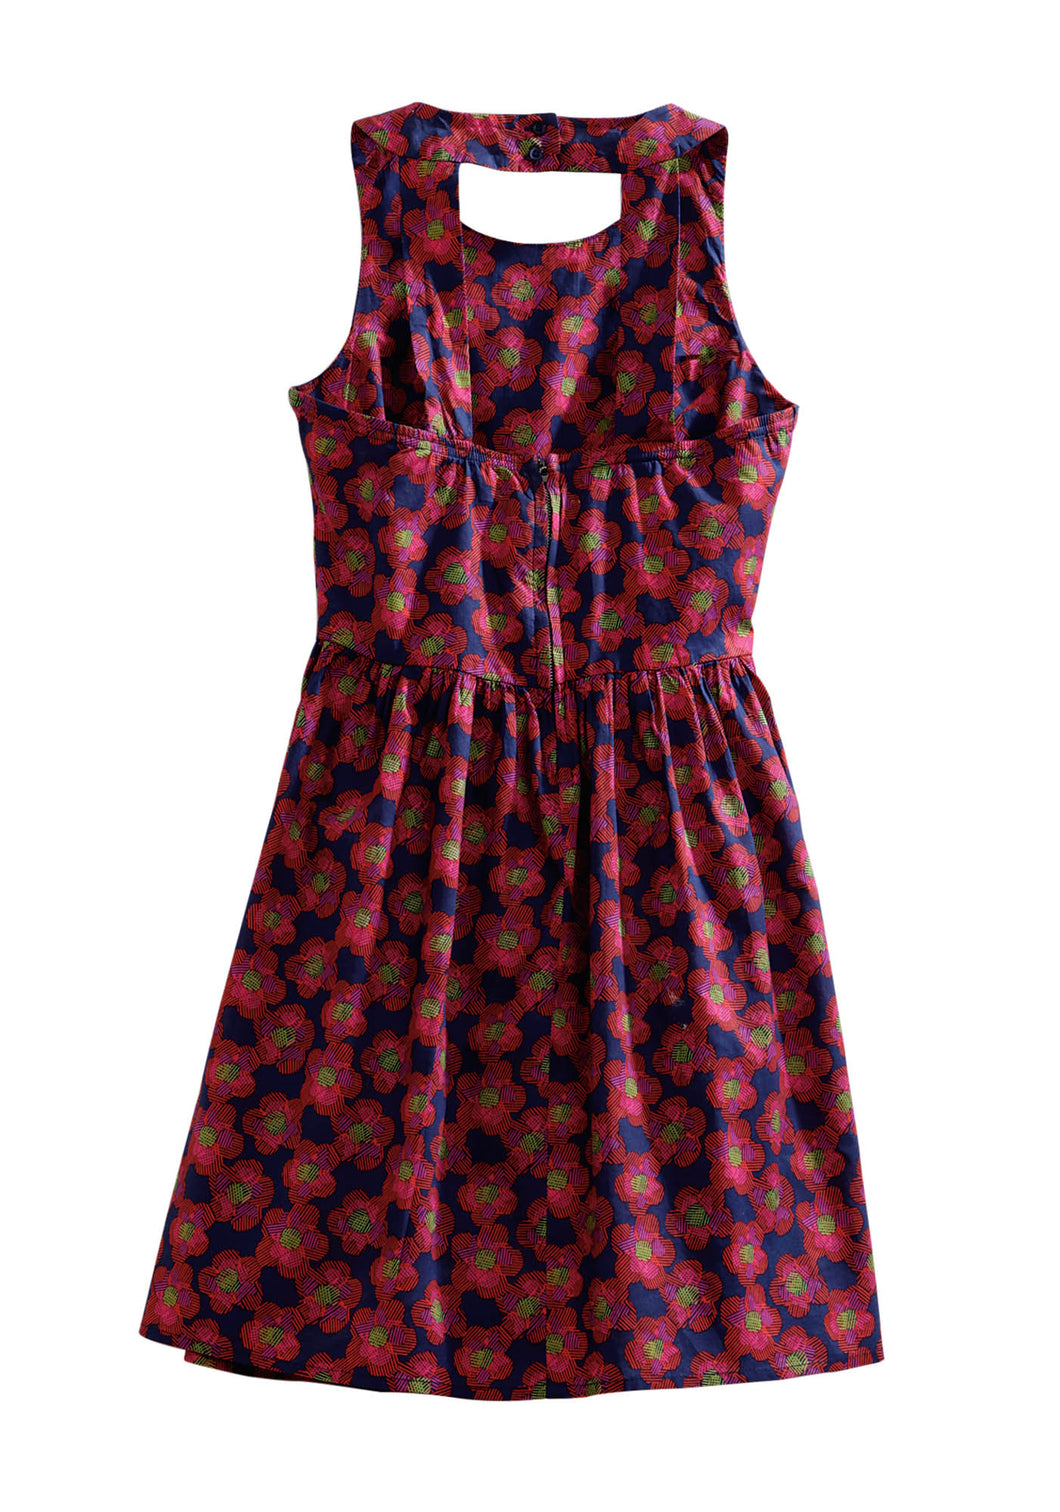 Tin Haul Collection Tinhaul Ladies Sleeveless Dress 0250 Bouncy Floral Print